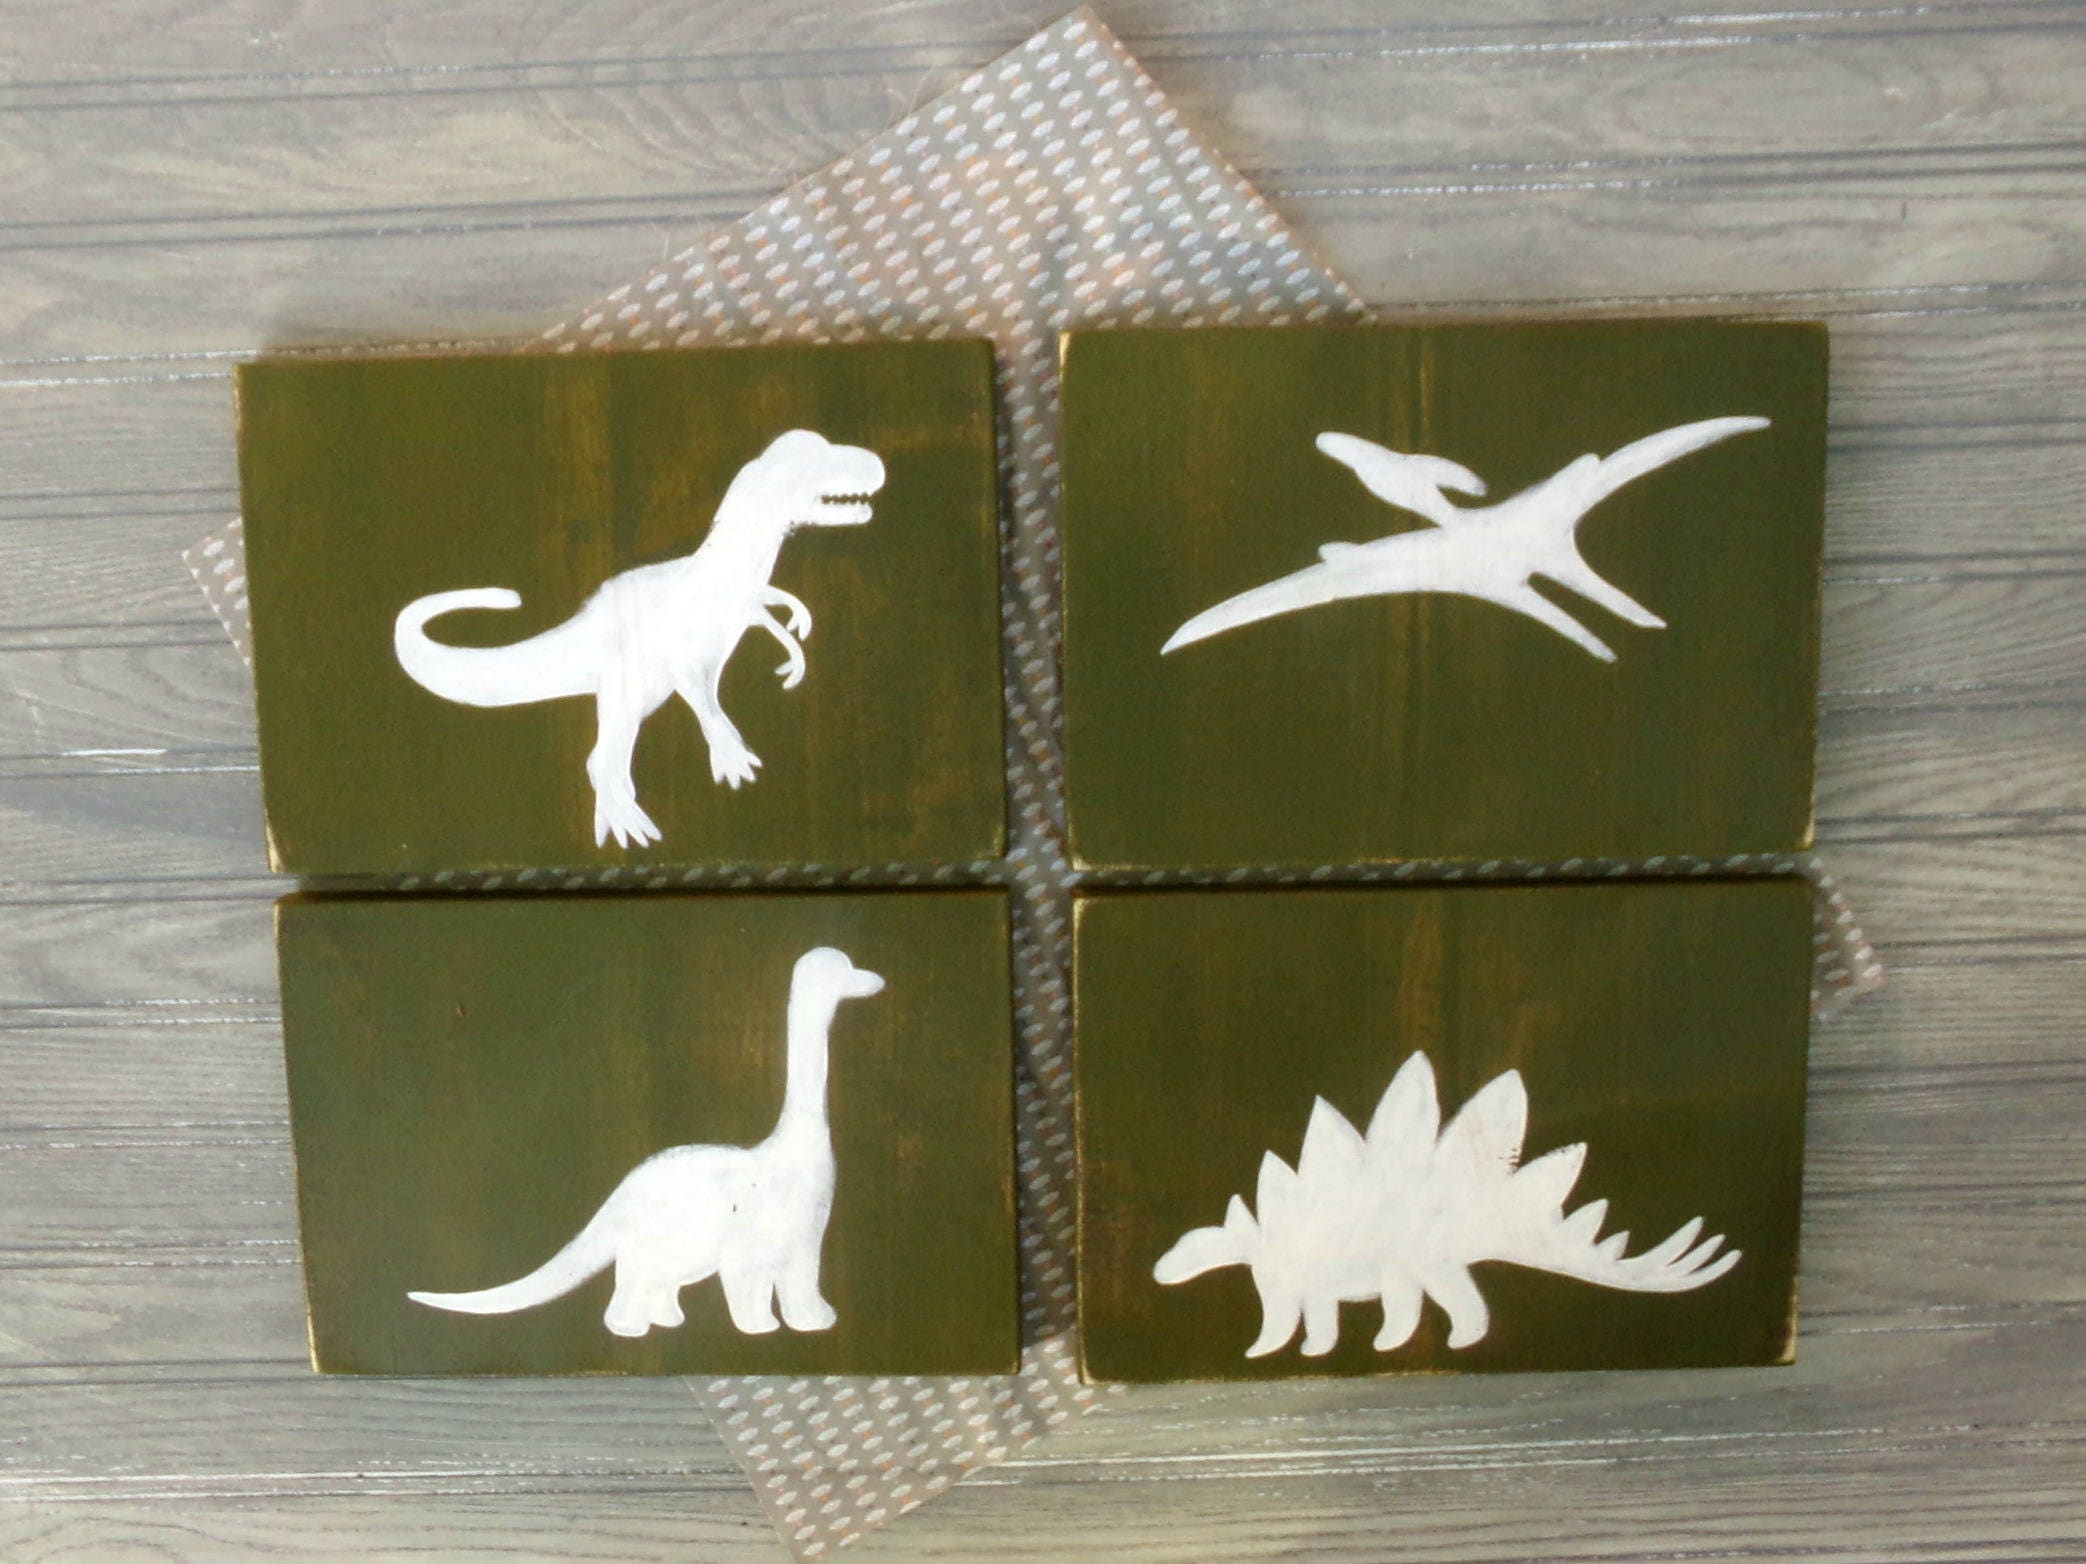 Dinosaur Rustic Wood Decor Set Rustic Nursery Decor Kids